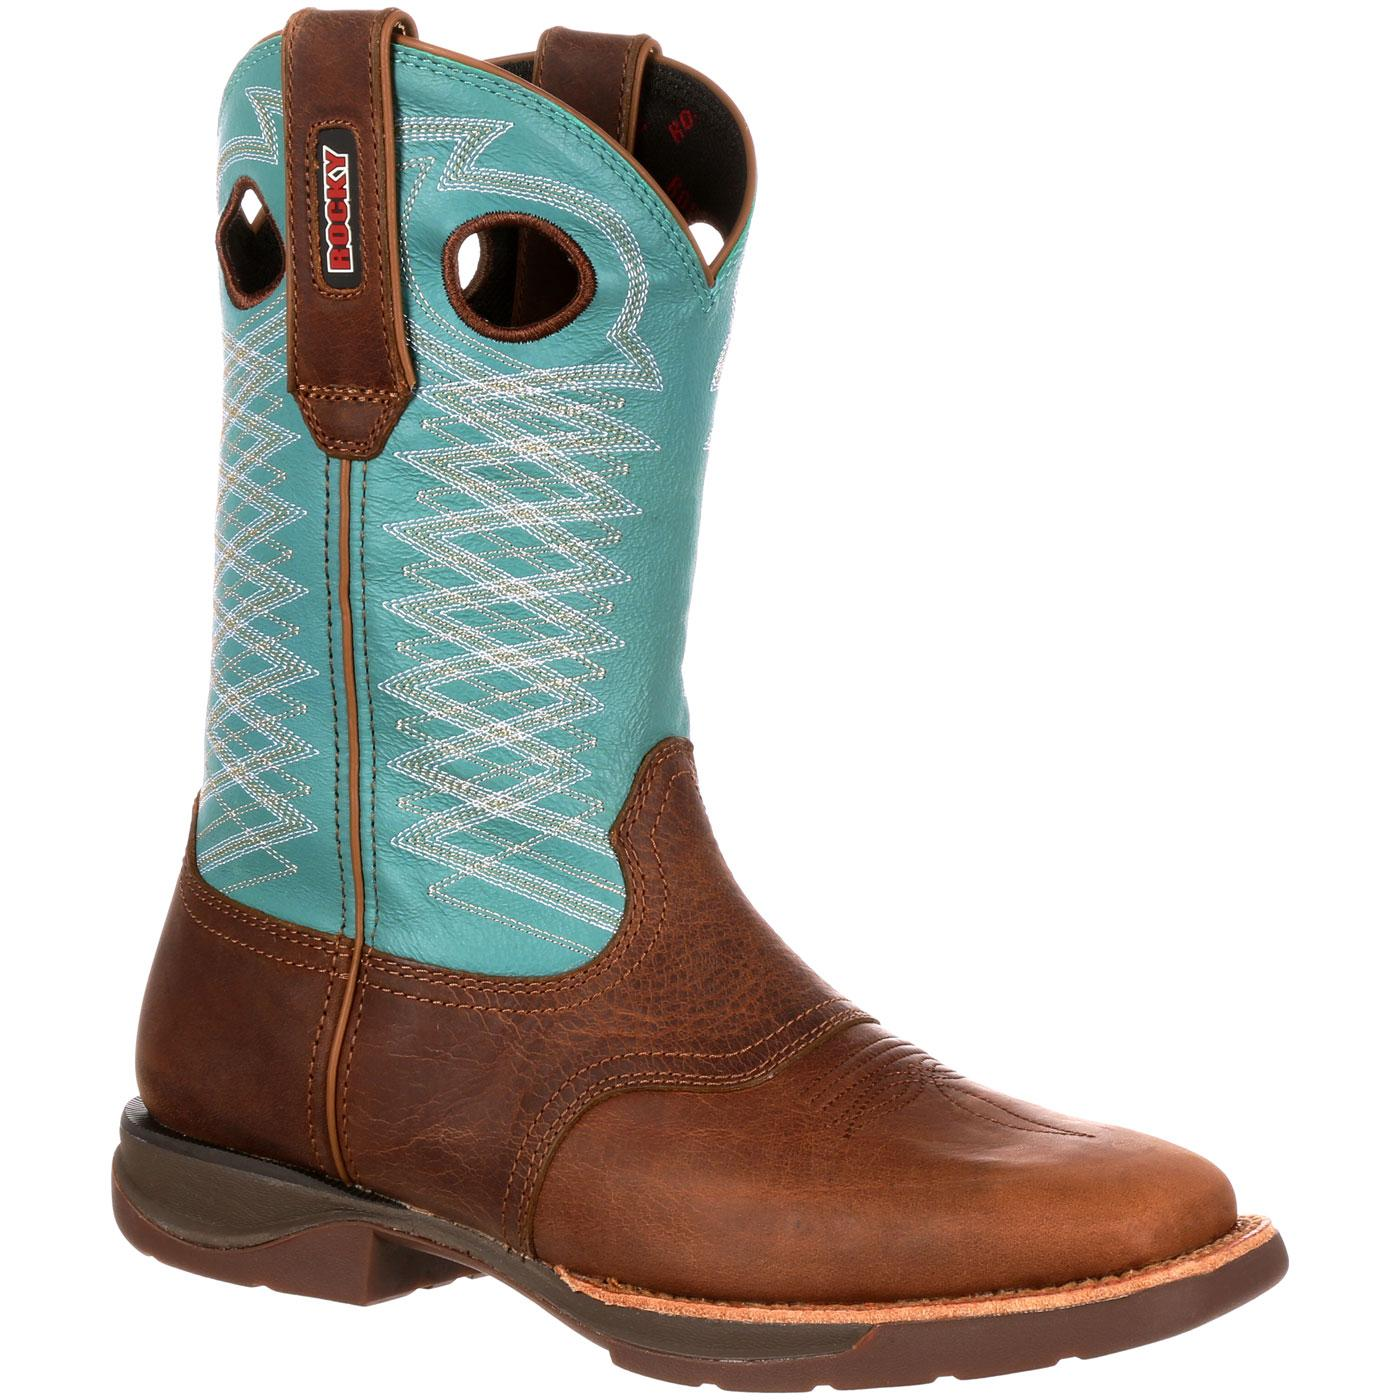 Rocky LT - Women's Brown-Teal Blue Saddle Western Boots